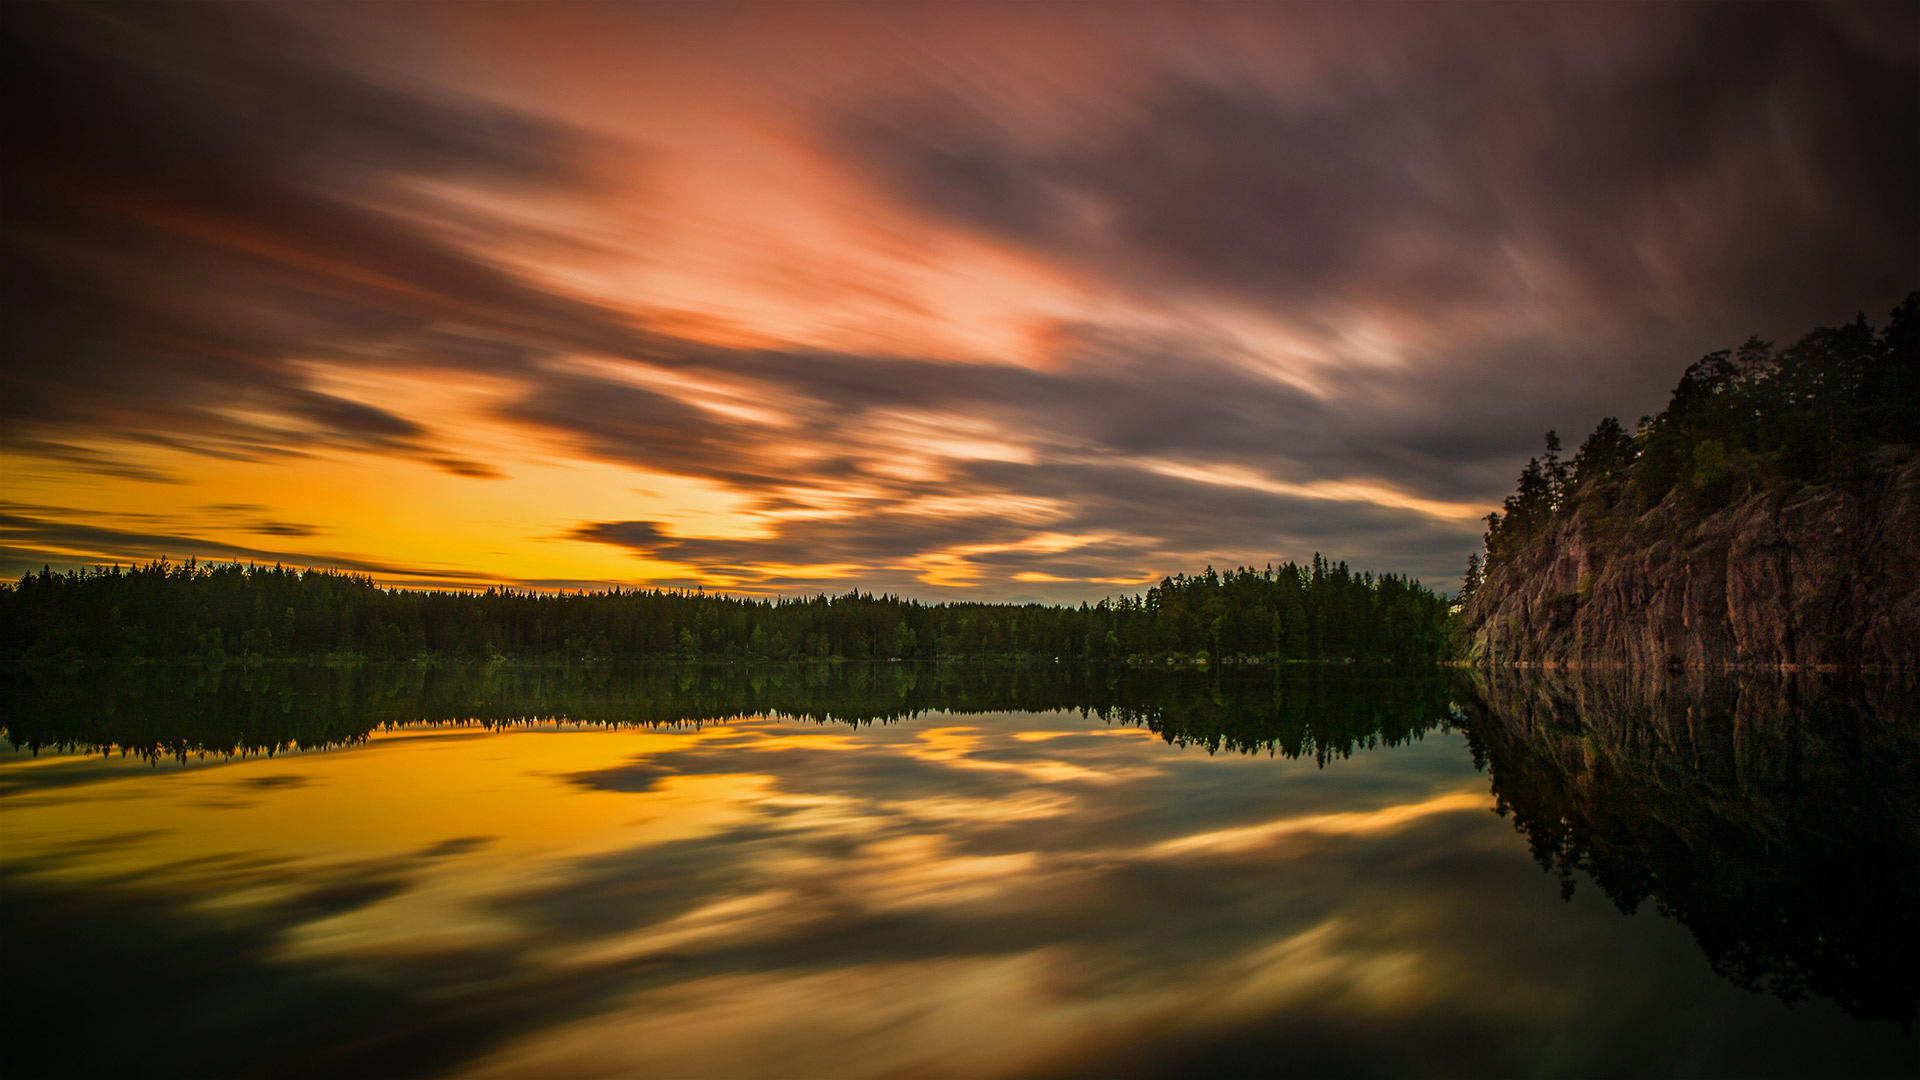 Midsummer light captured at a lake near the city of Örebro, Sweden © Anders Jorulf/Getty Images